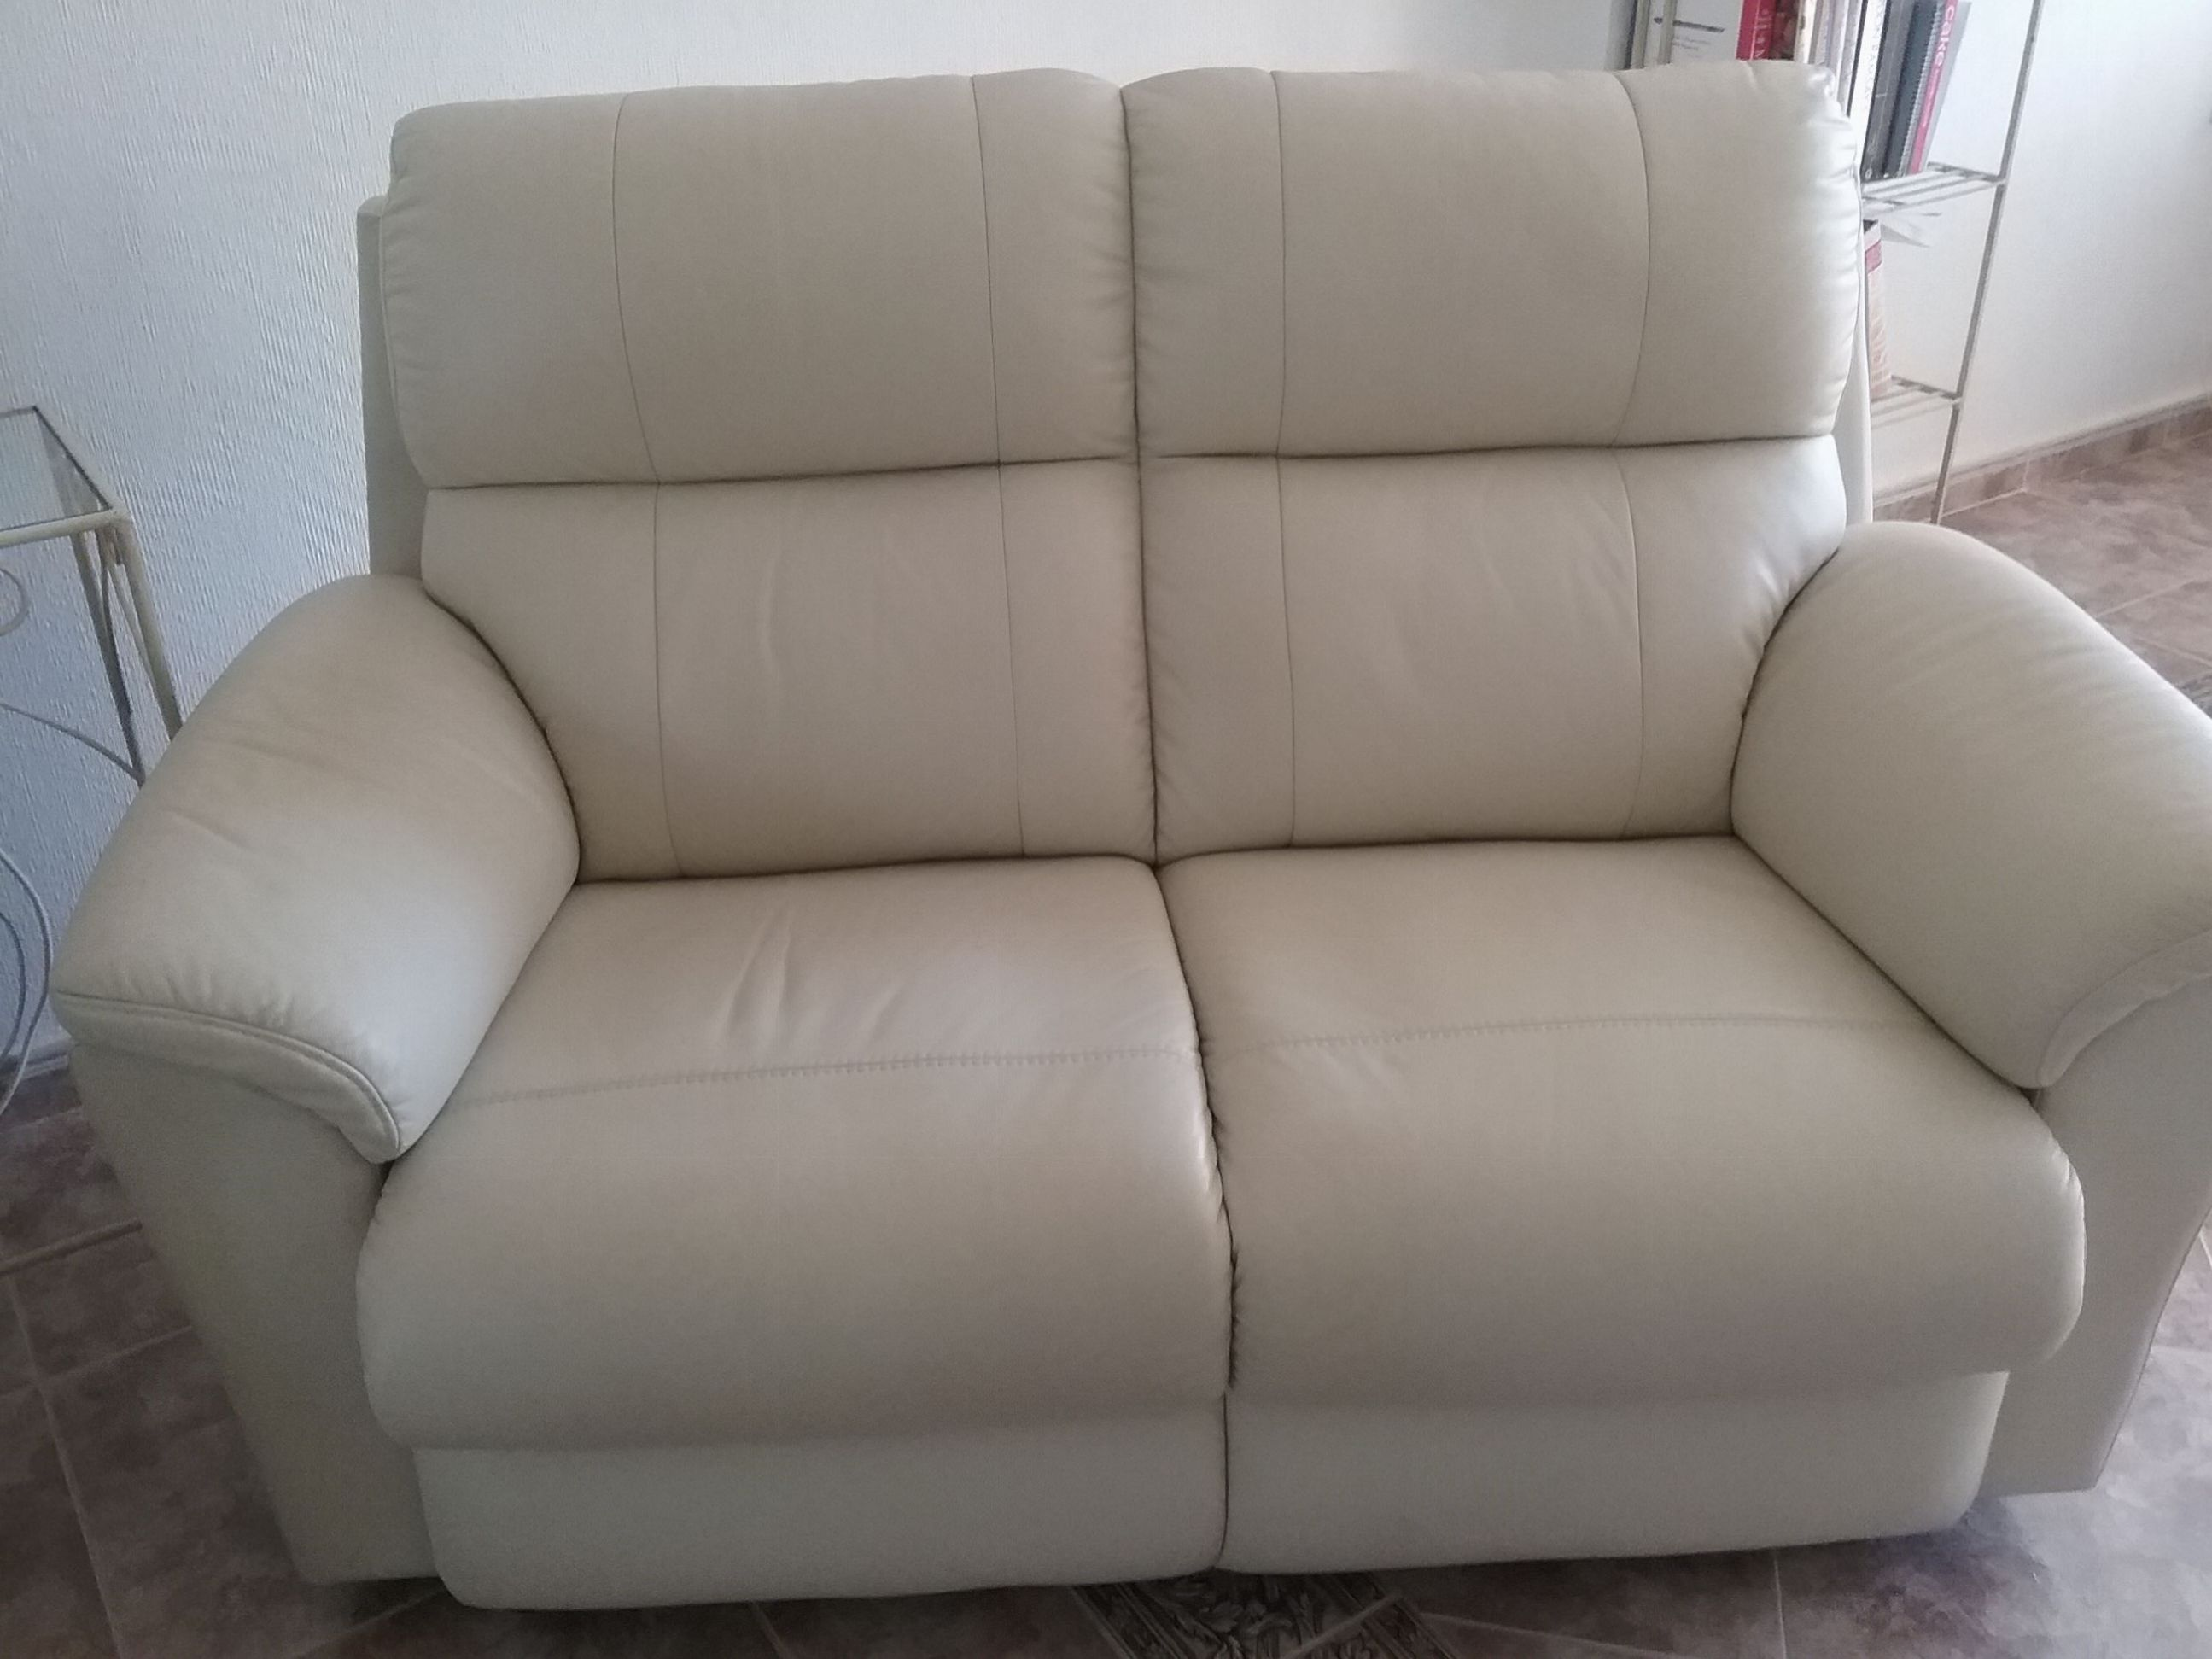 For sale: 2 and 3 seater cream leather sofas - Buy and sell ...